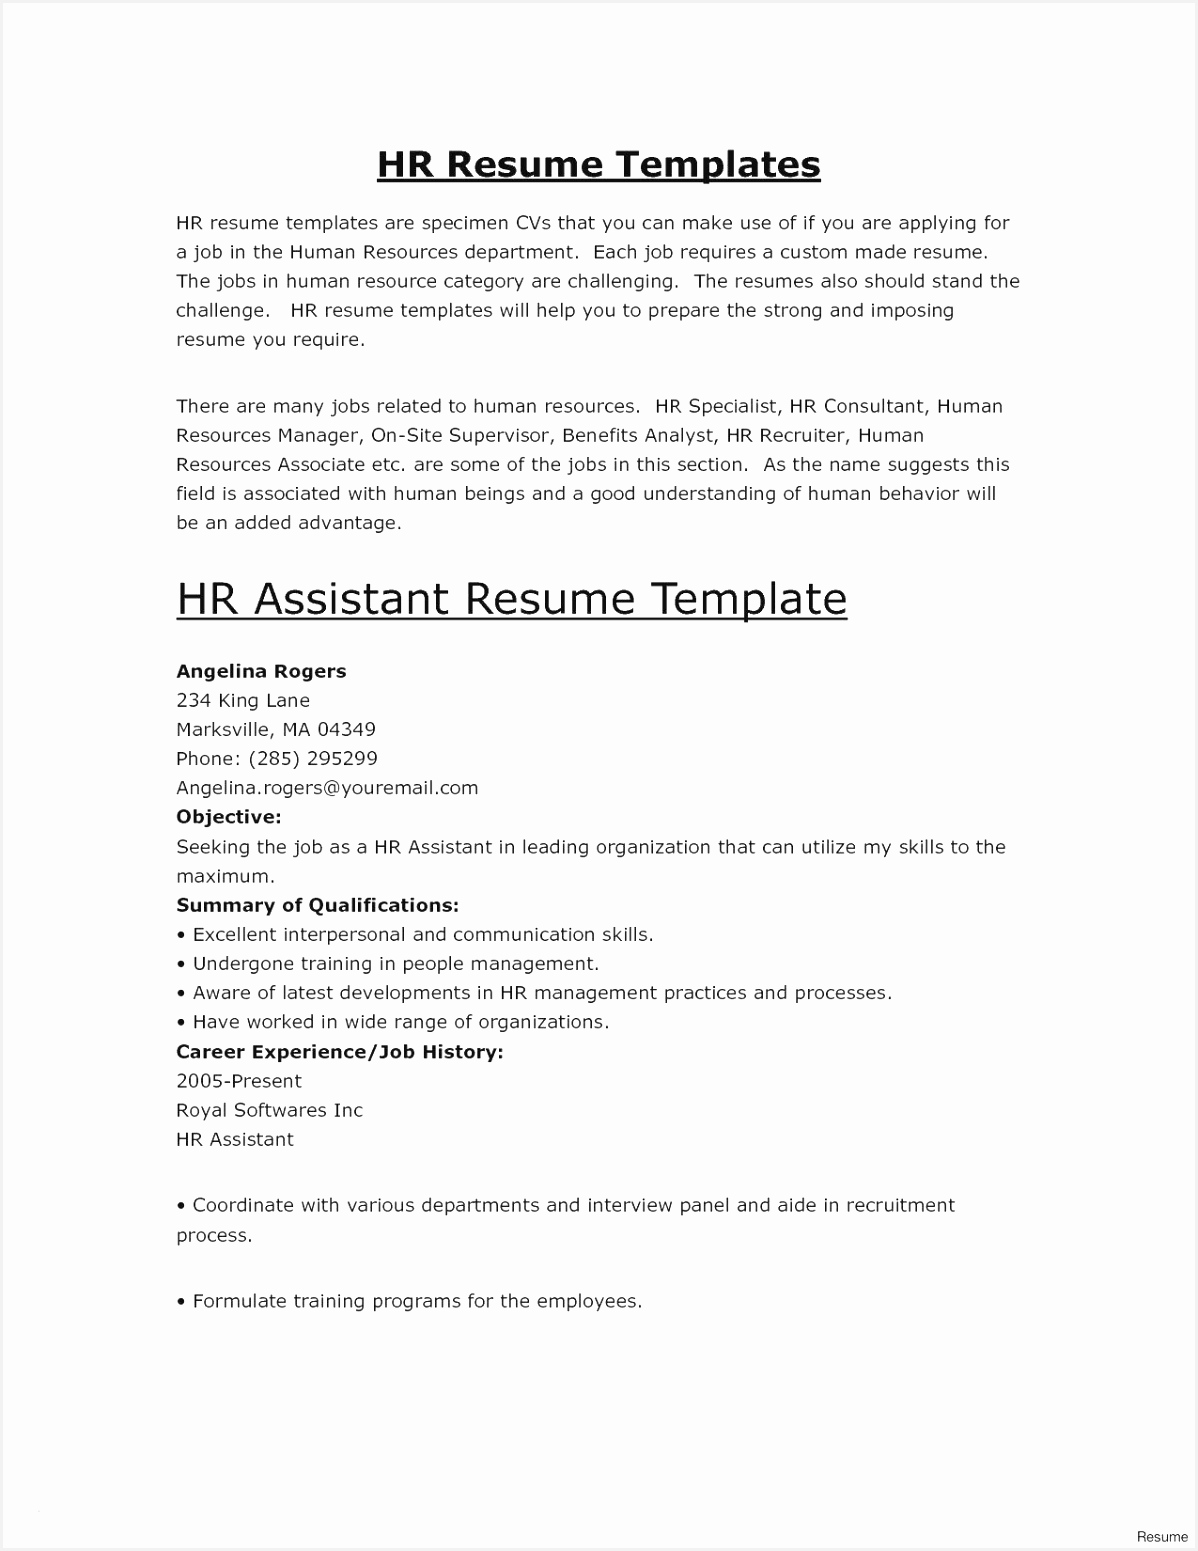 Nurse Technician Resume Kshyt Fresh Fiber Optics Technician Sample Resume Of 7 Nurse Technician Resume